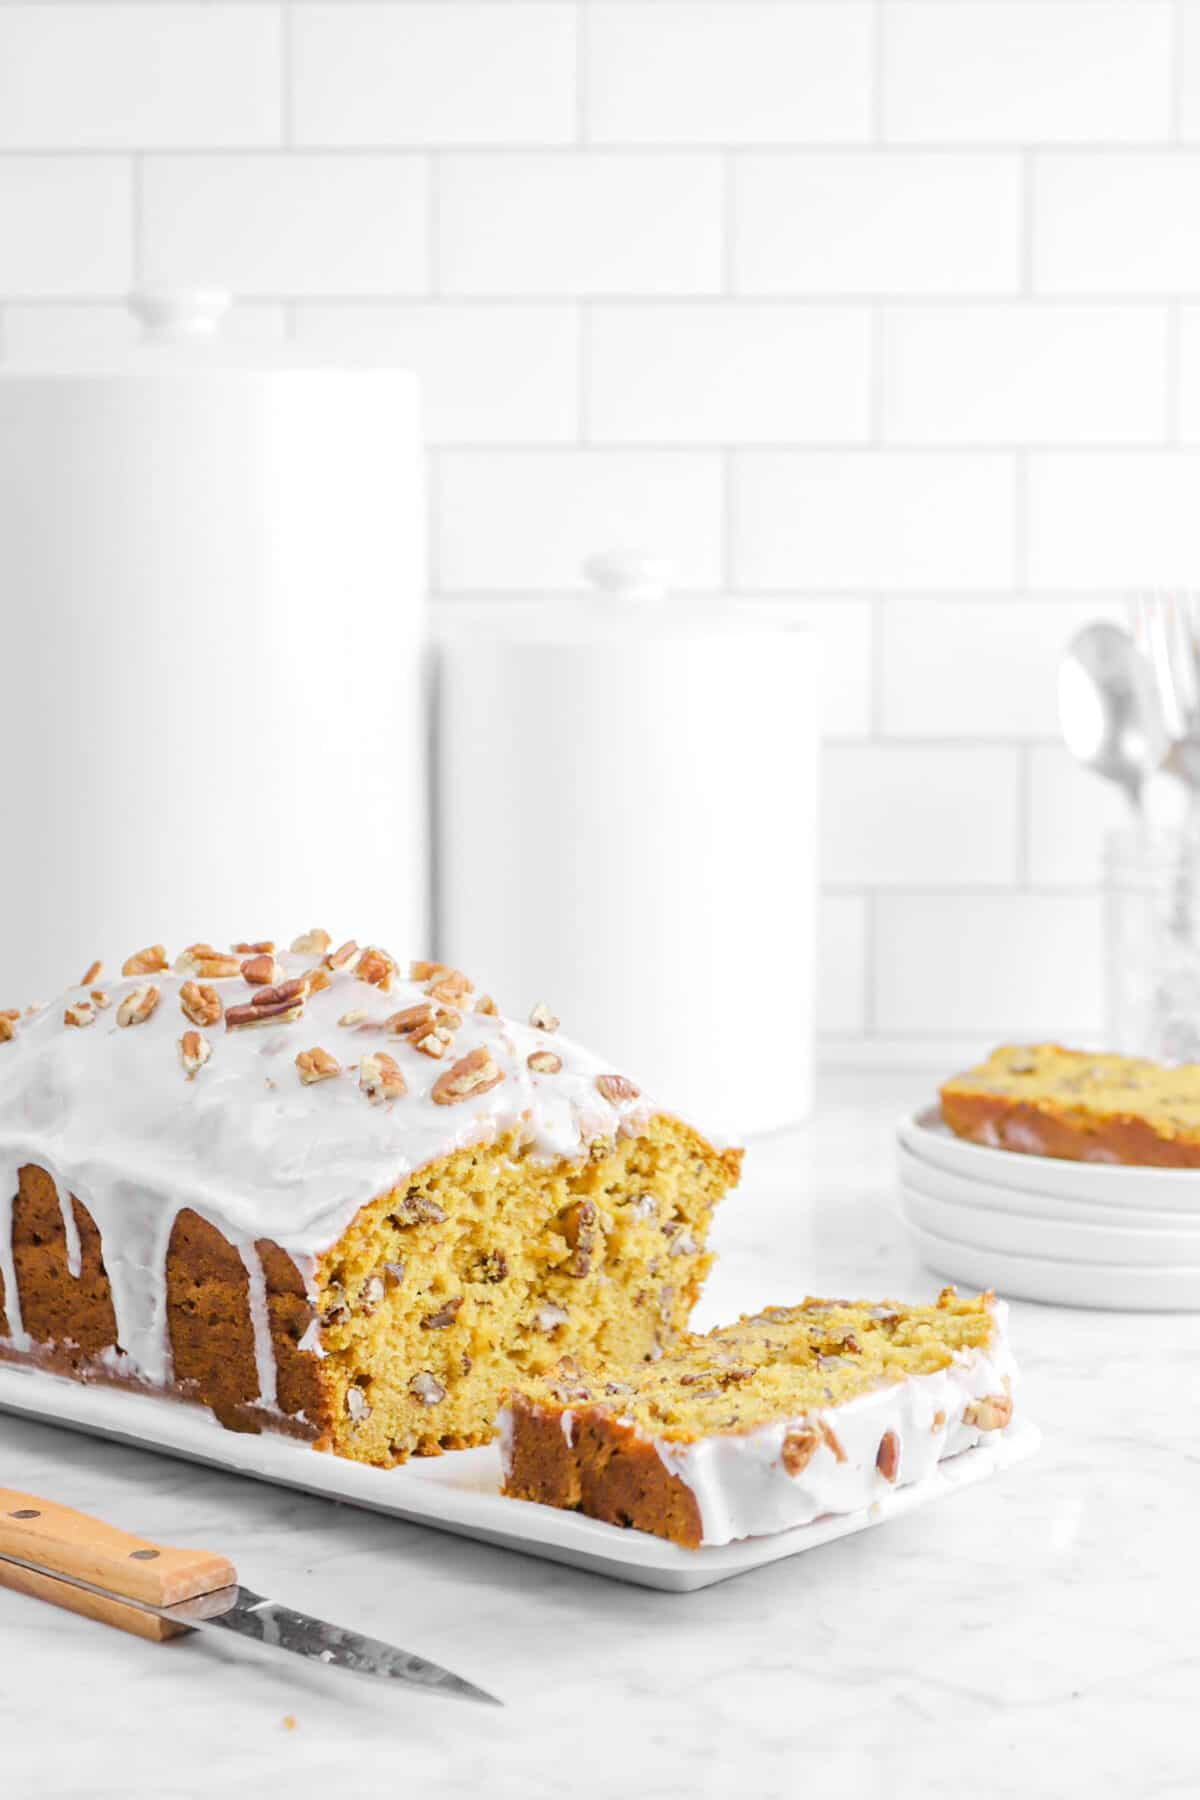 pumpkin bread on a white plate with a slice laying in front of it with plates and containers behind